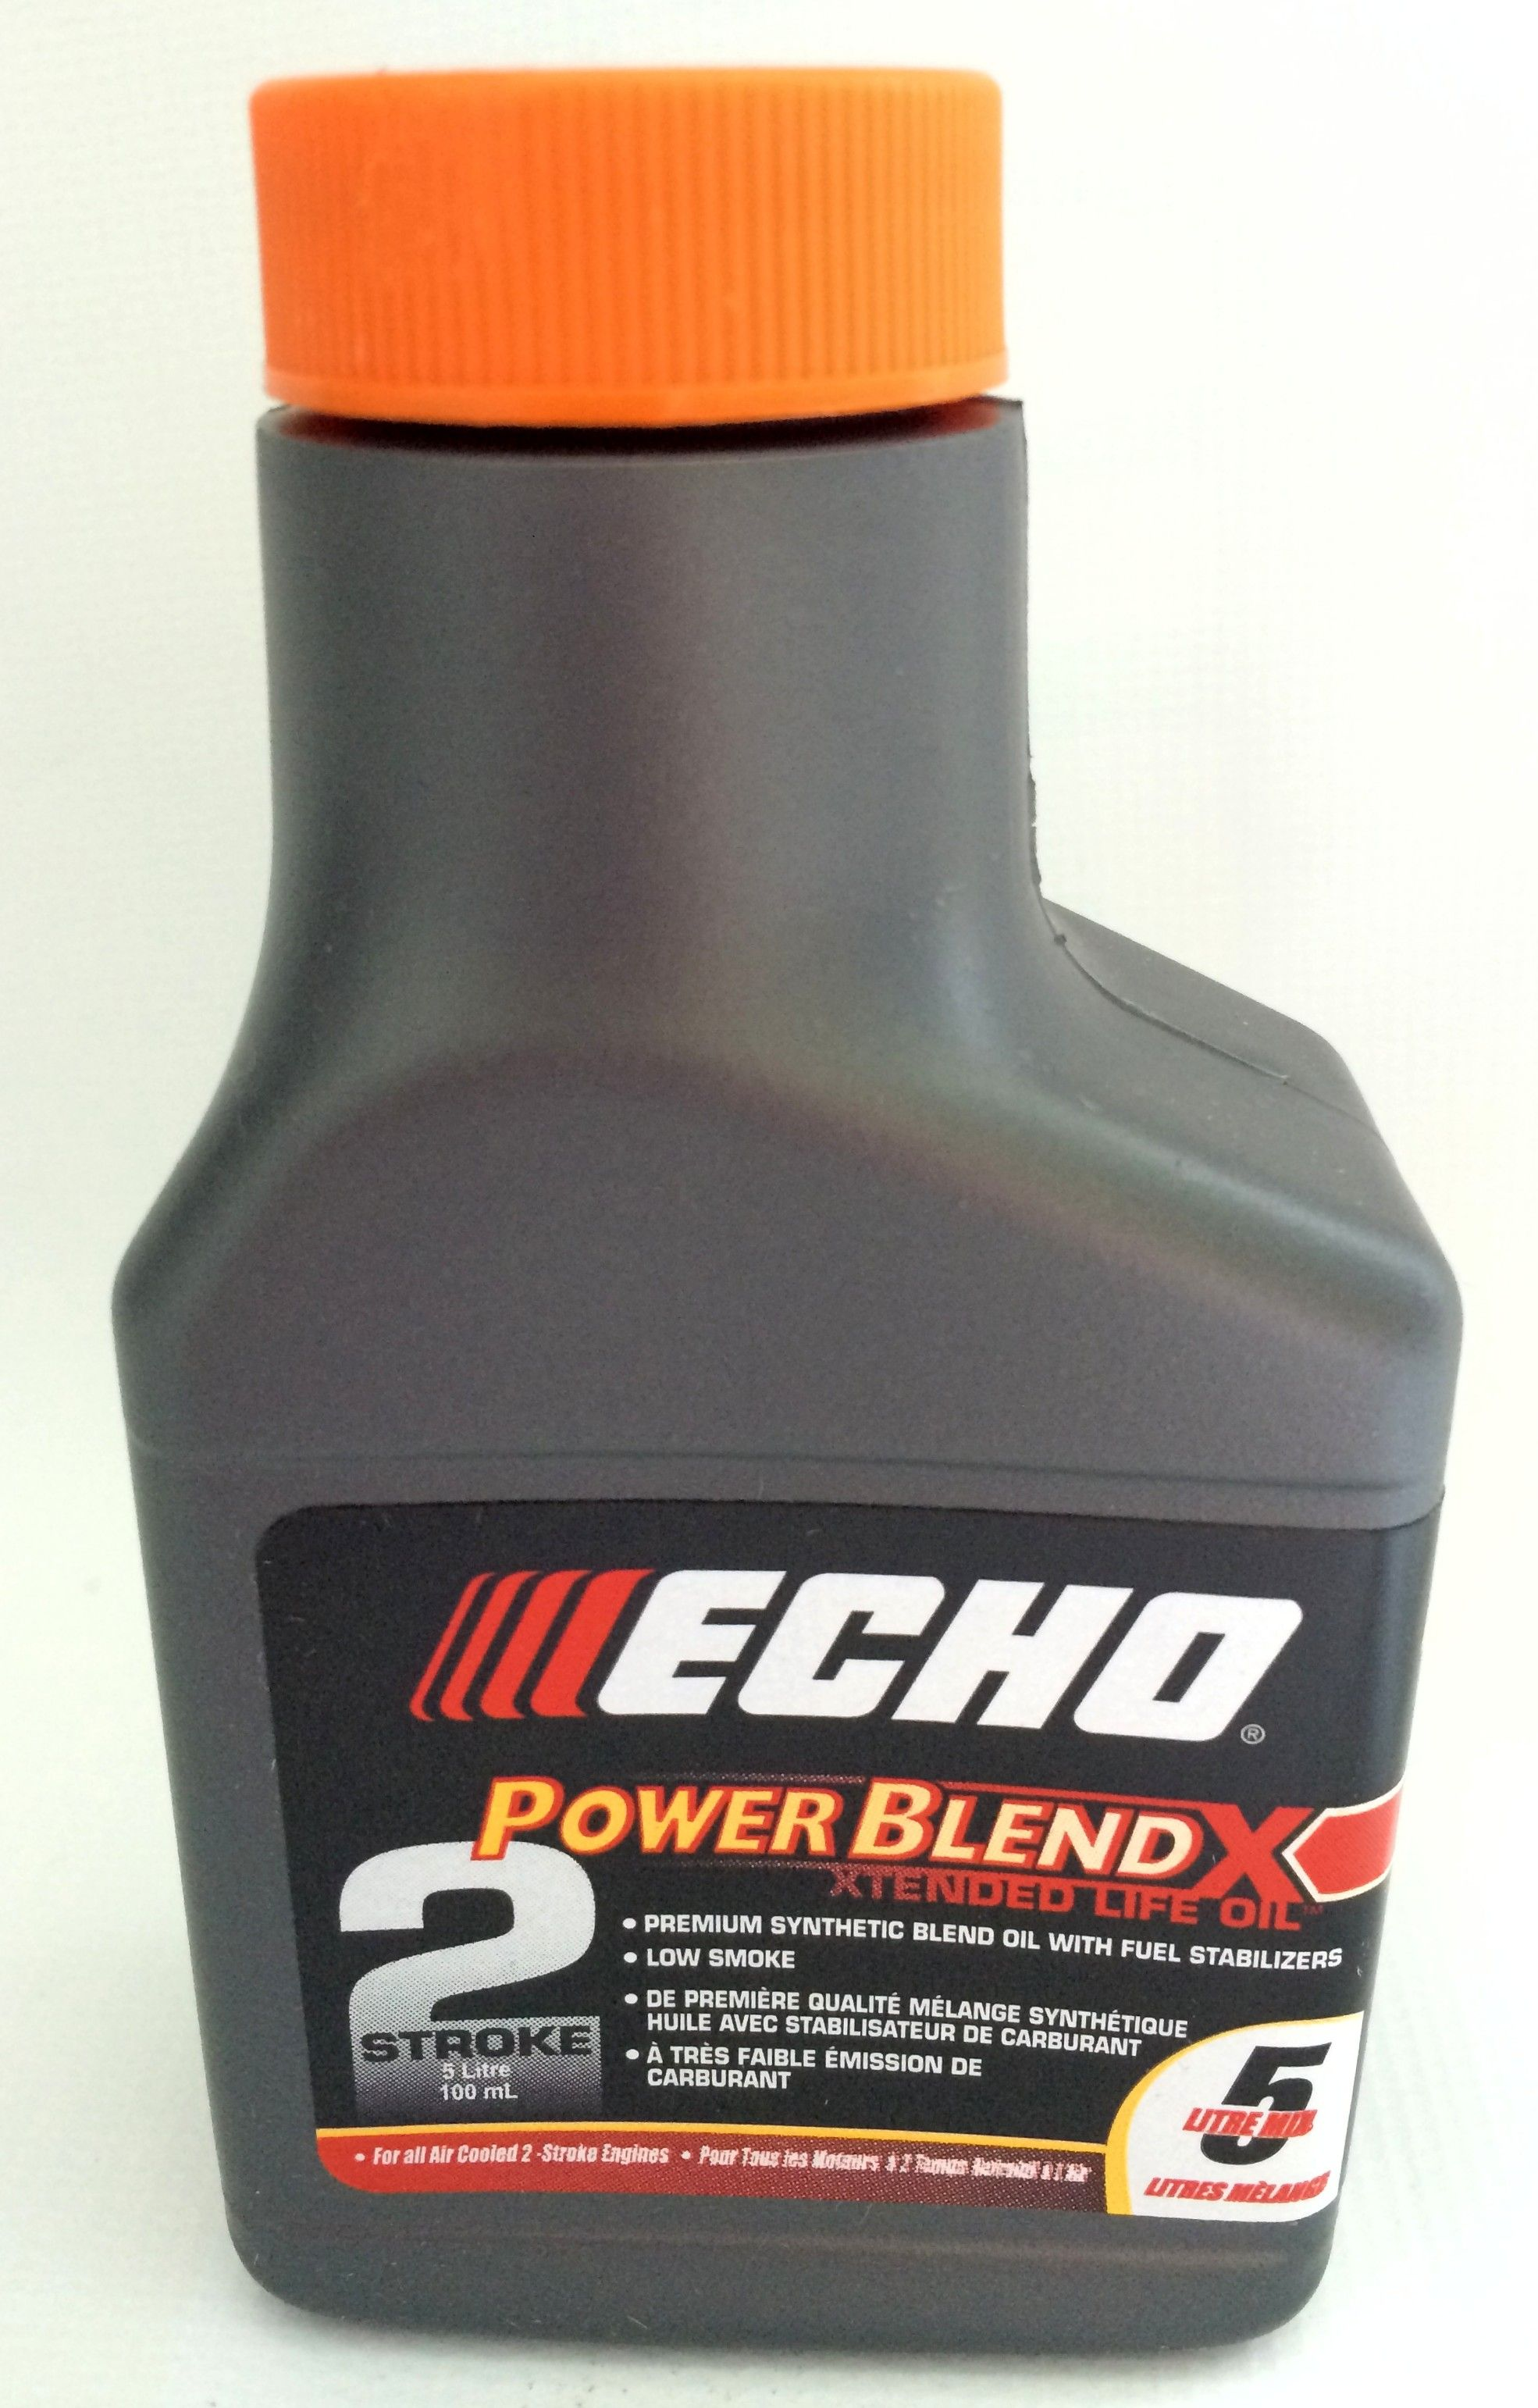 ECHO Oil 100mL 999888-0008-5